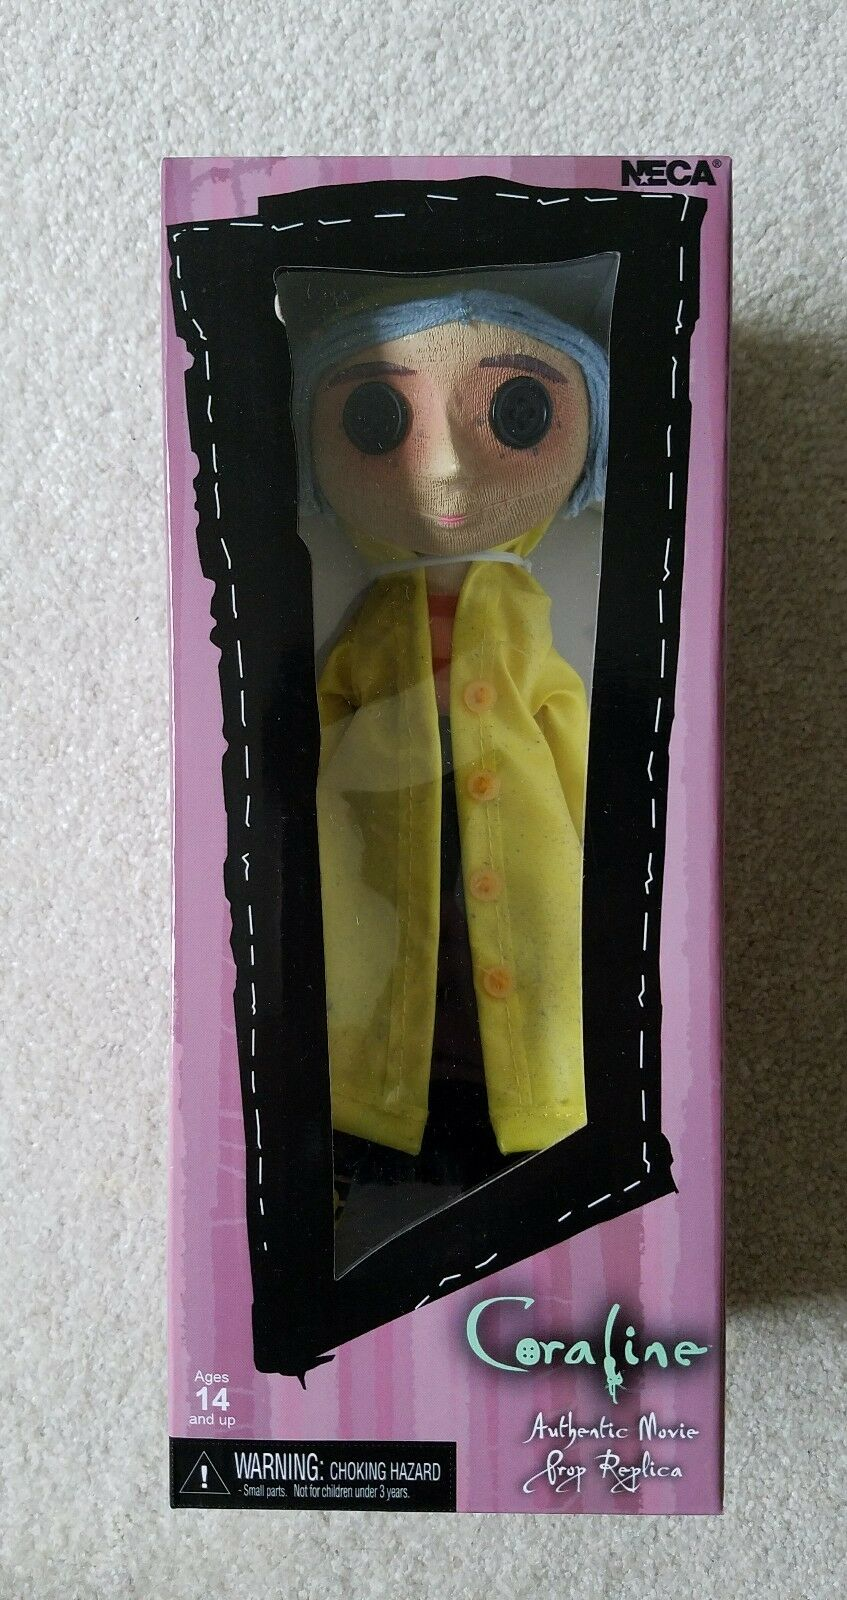 SDCC 2017 Coraline Movie Prop Replica Figure Exclusive Laika Experience Mondo